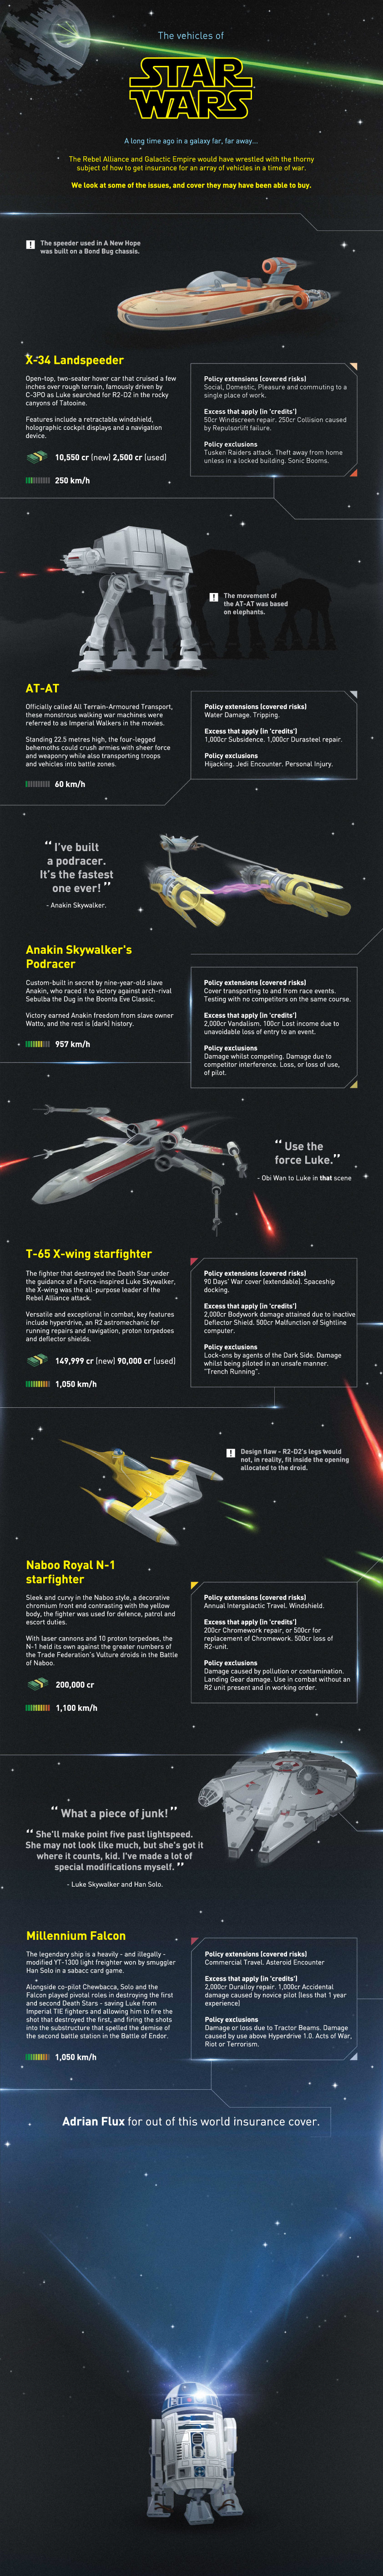 Star Wars vehicles infographic